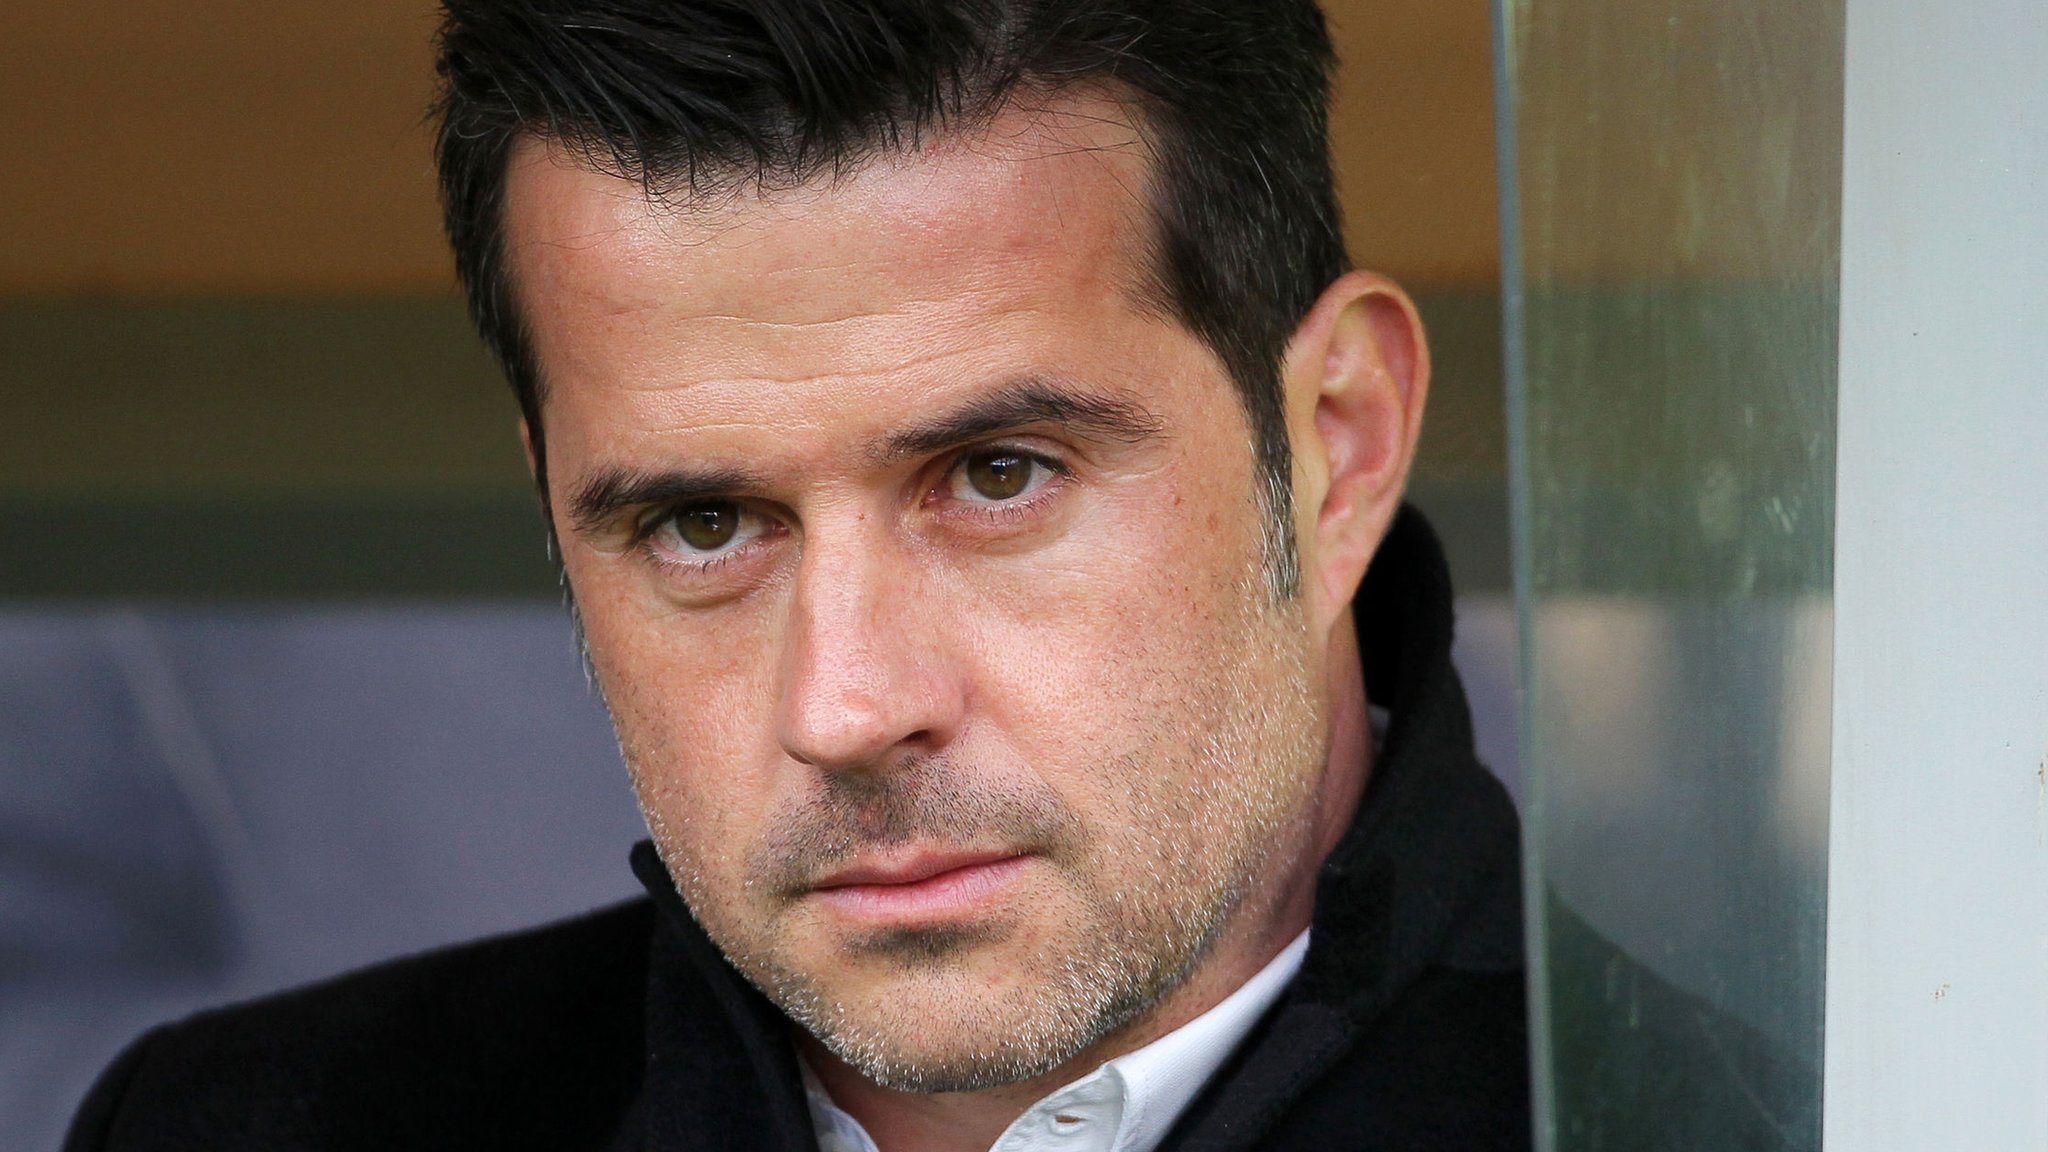 Marco Silva: Hull City manager resigns after the club's relegation